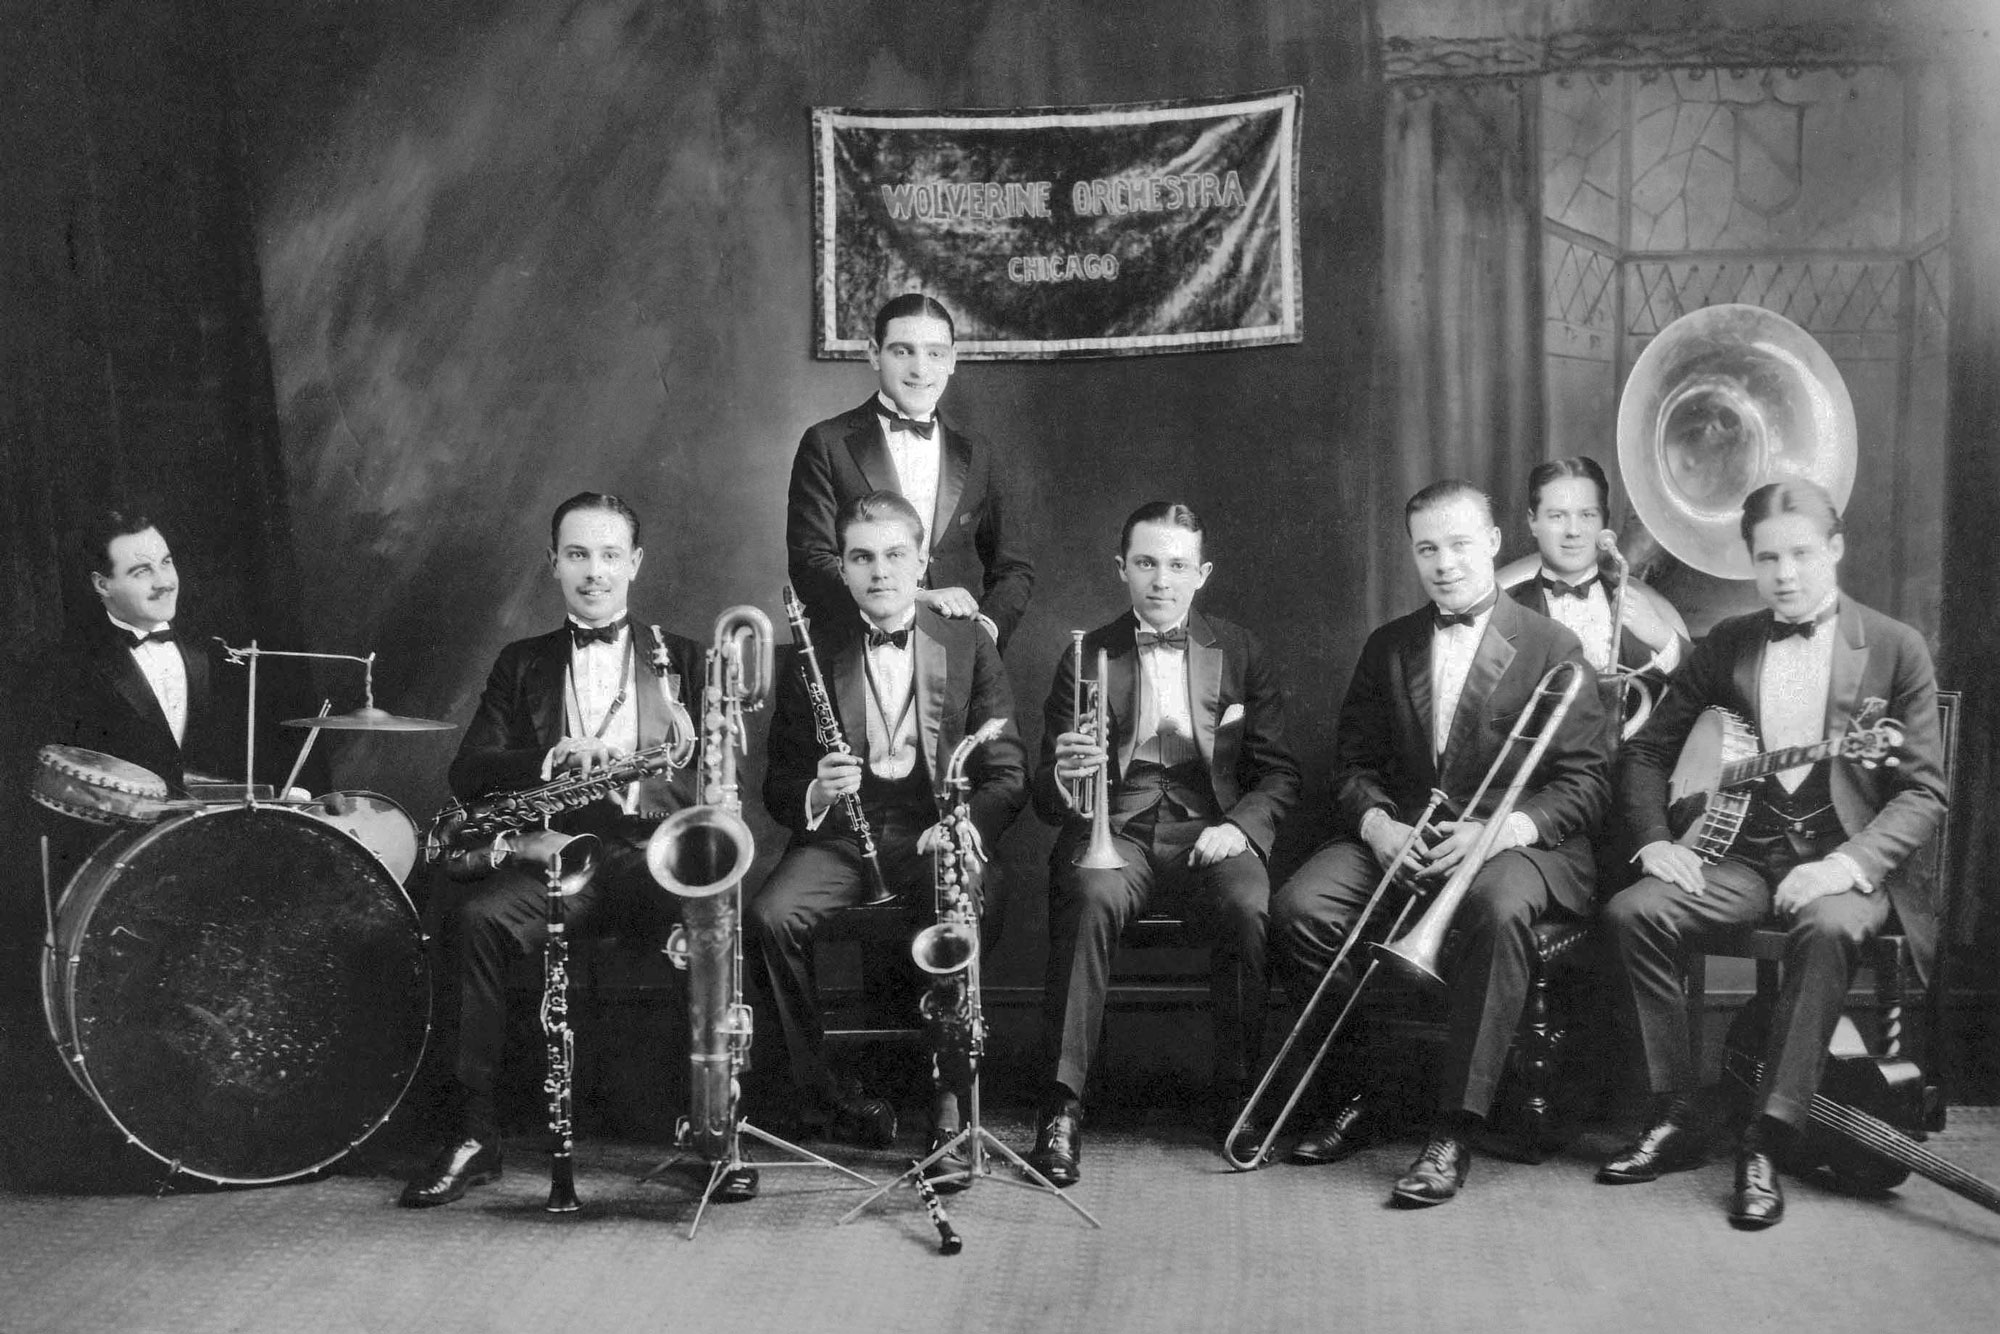 Bix Beiderbecke (center, with trumpet) and the Wolverines at Doyle's Academy of Music in Cincinnati, Ohio, 1924. (Wikipedia Commons)